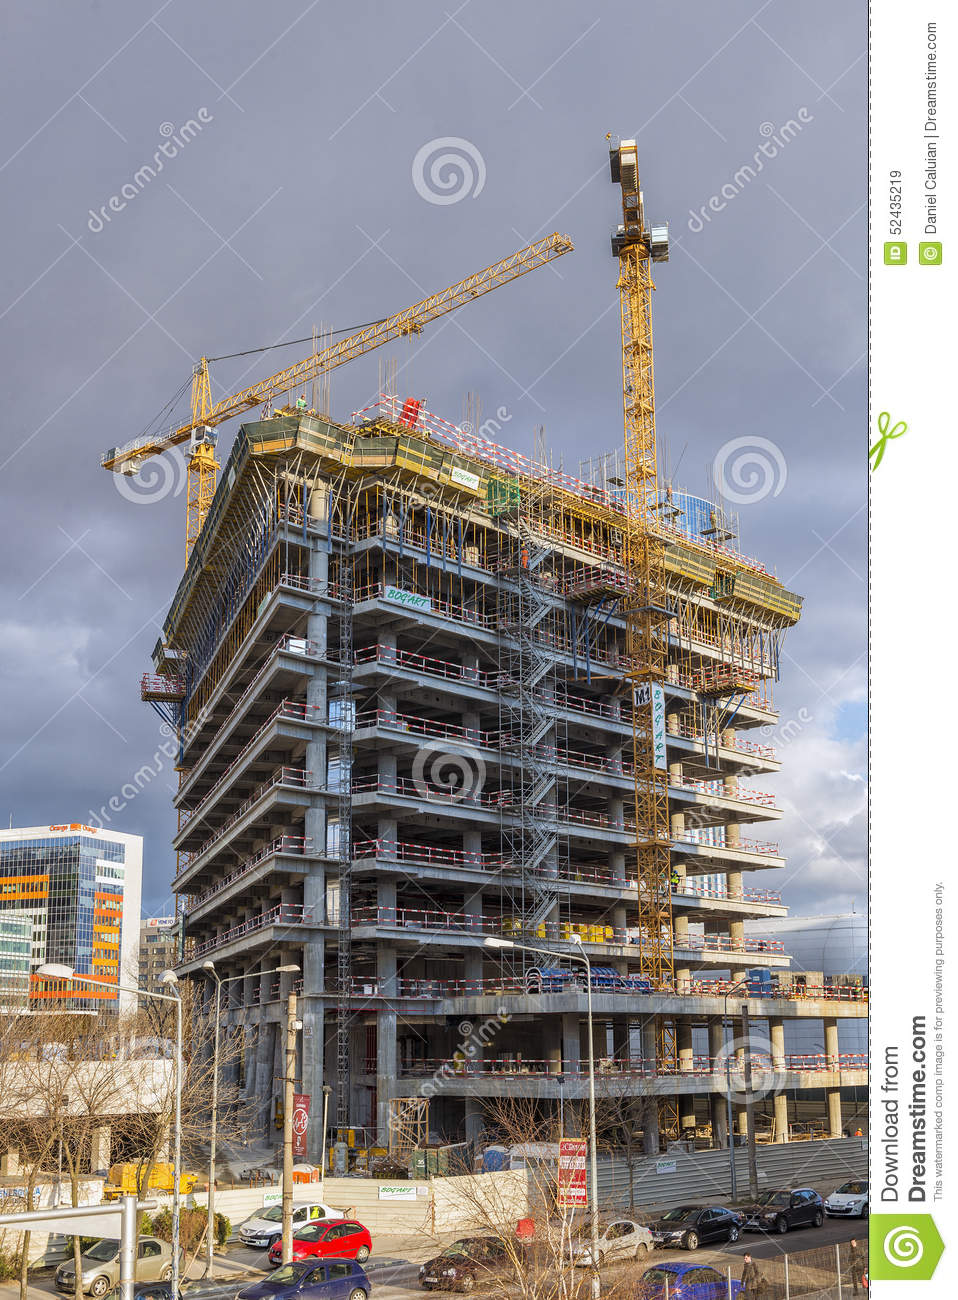 large cranes working in construction site building new